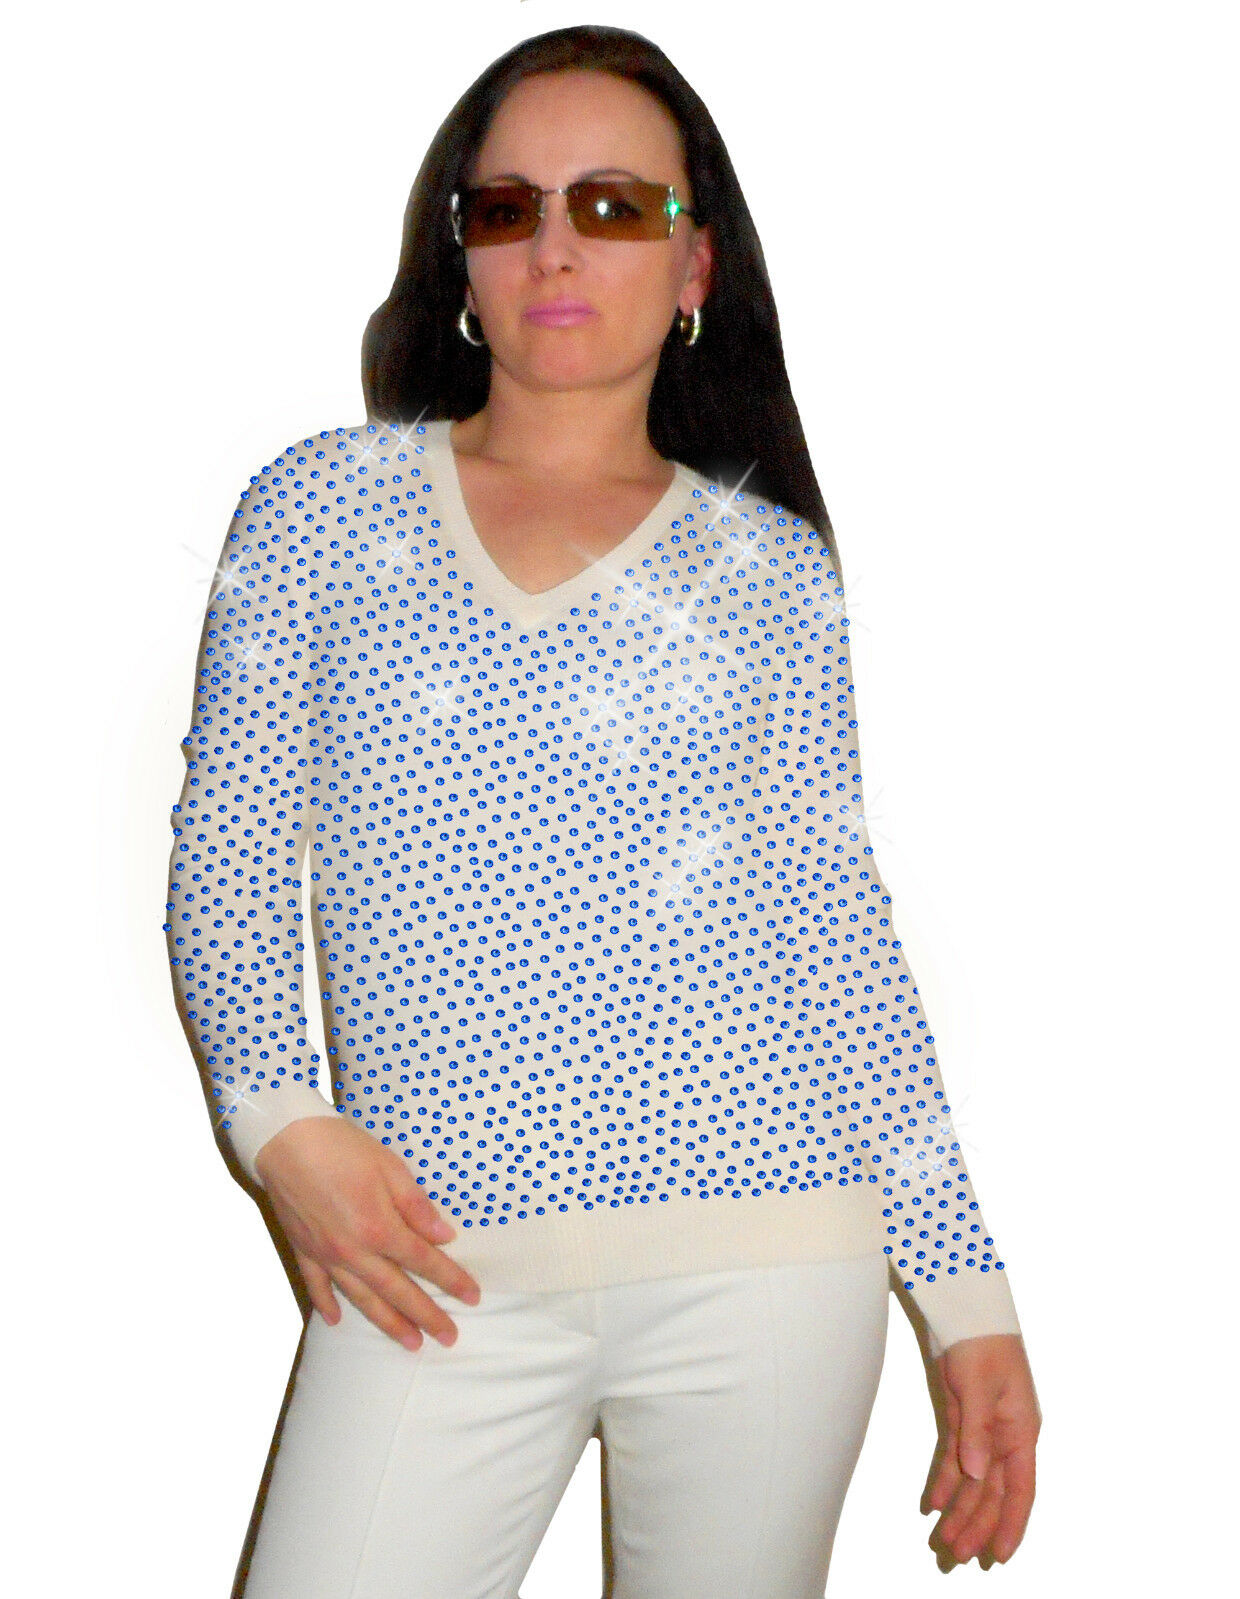 Luxe Oh` Dor 100% 100% 100% Cashmere Sweater Elite White Royal bluee 42 144 5 12FT   L 3ba377